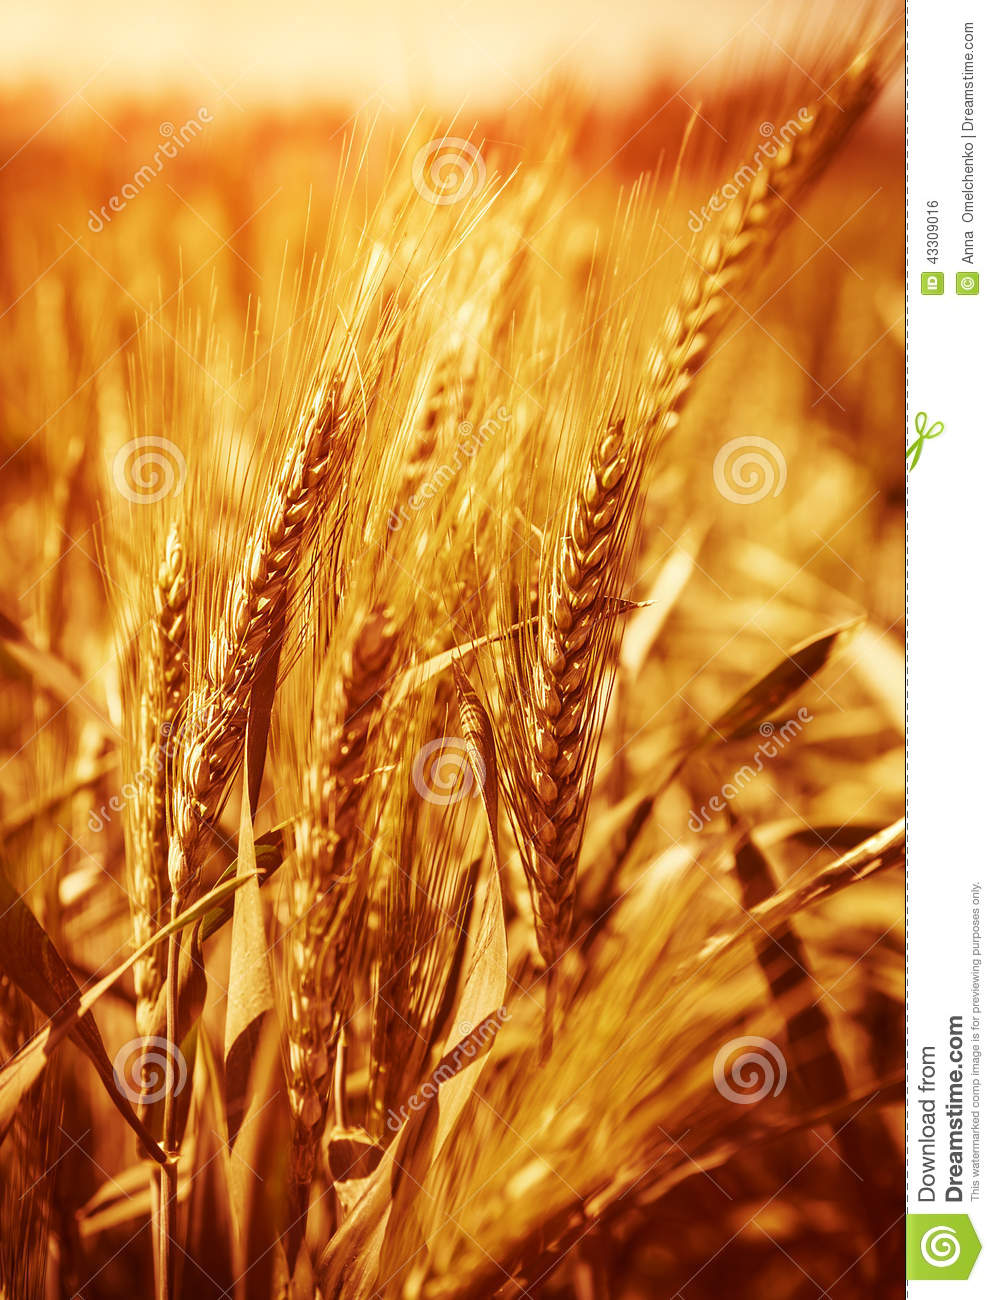 Fall Harvest Wallpaper Hd Wheat Field Background Stock Photo Image 43309016